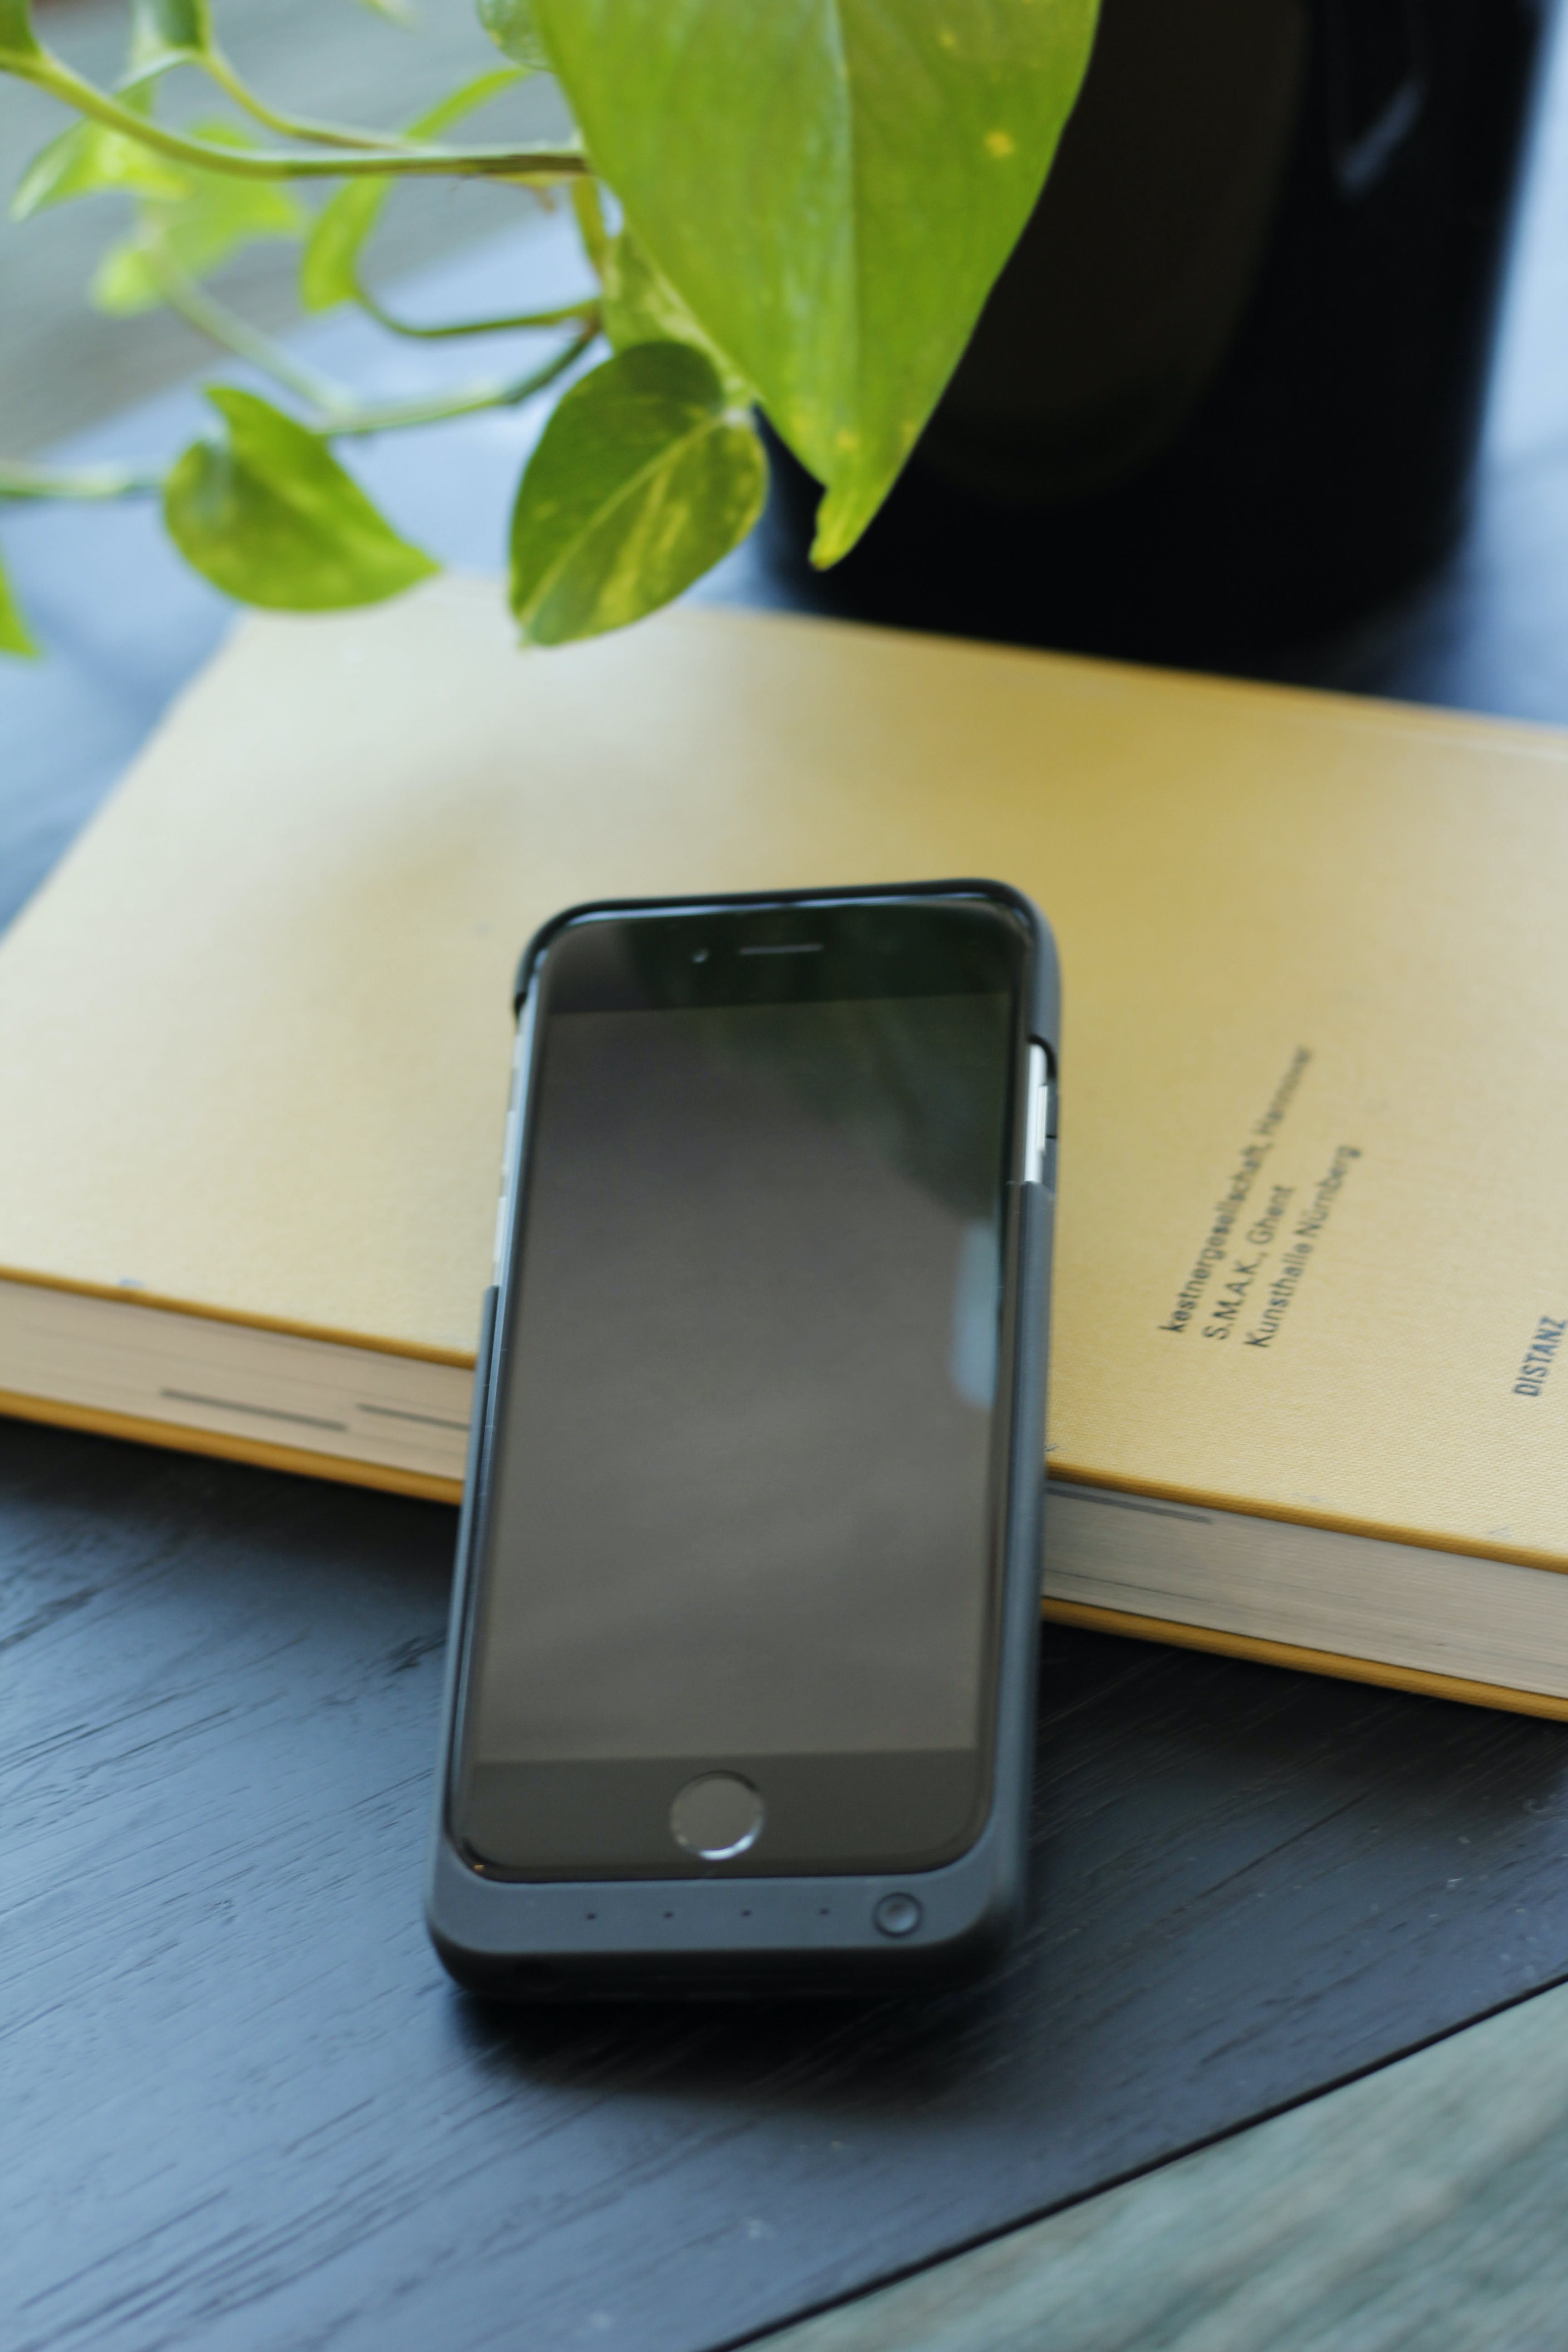 Free stock photo of iphone, plant, table, book